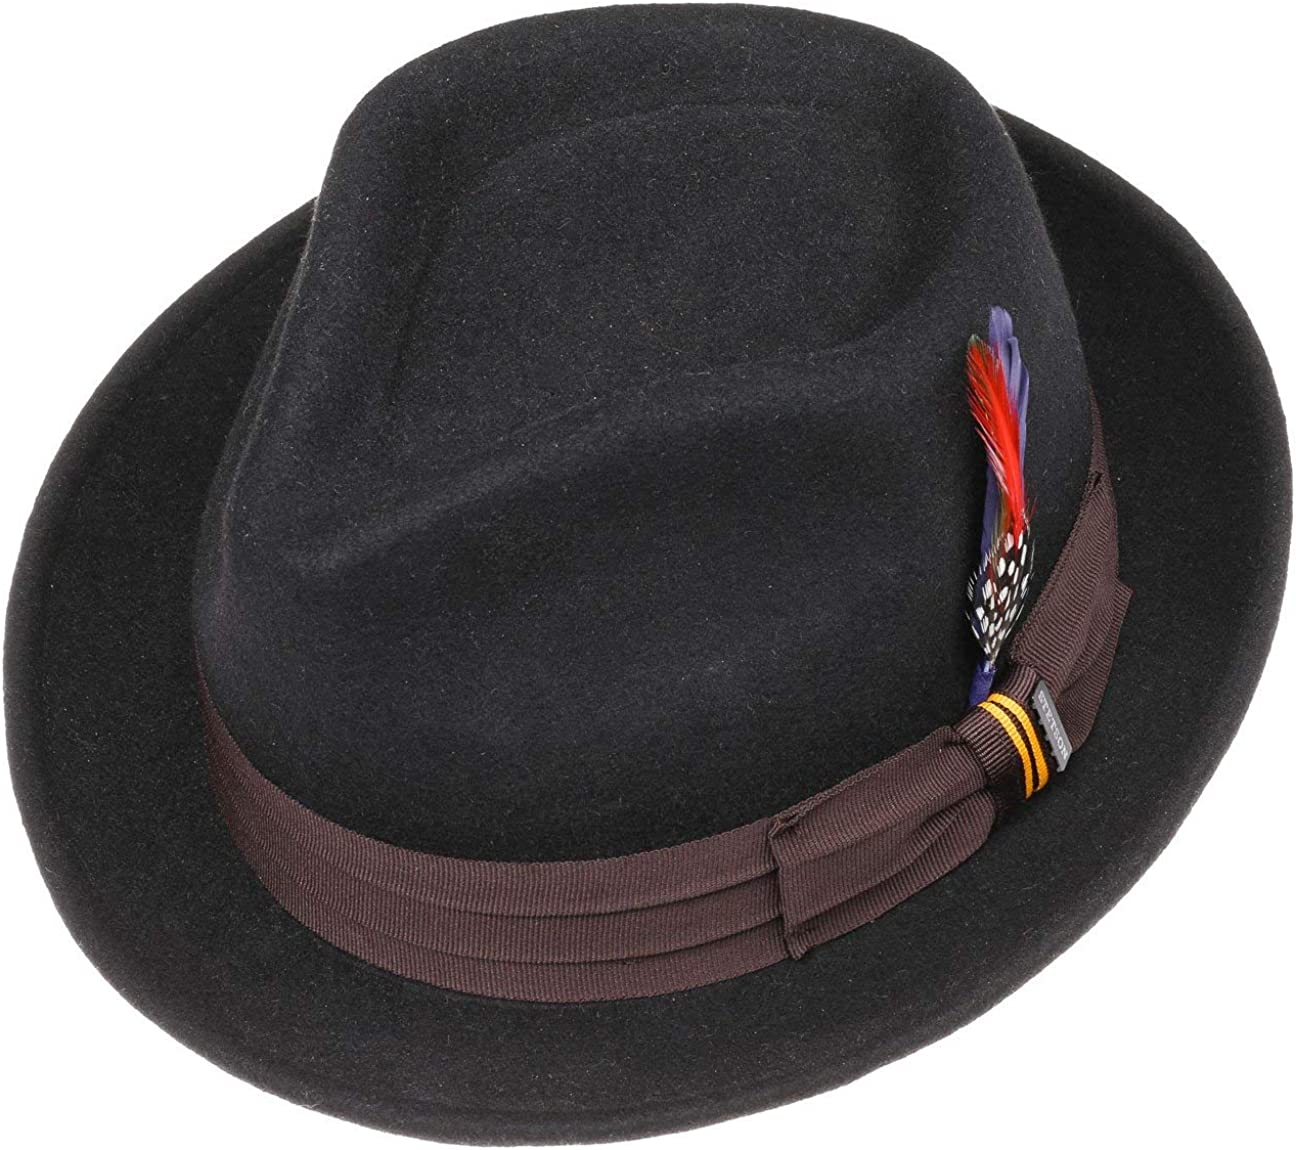 Outdoor Fedora rain with Grosgrain Band Summer-Winter Stetson Valema Player Hat Wool Felt Men